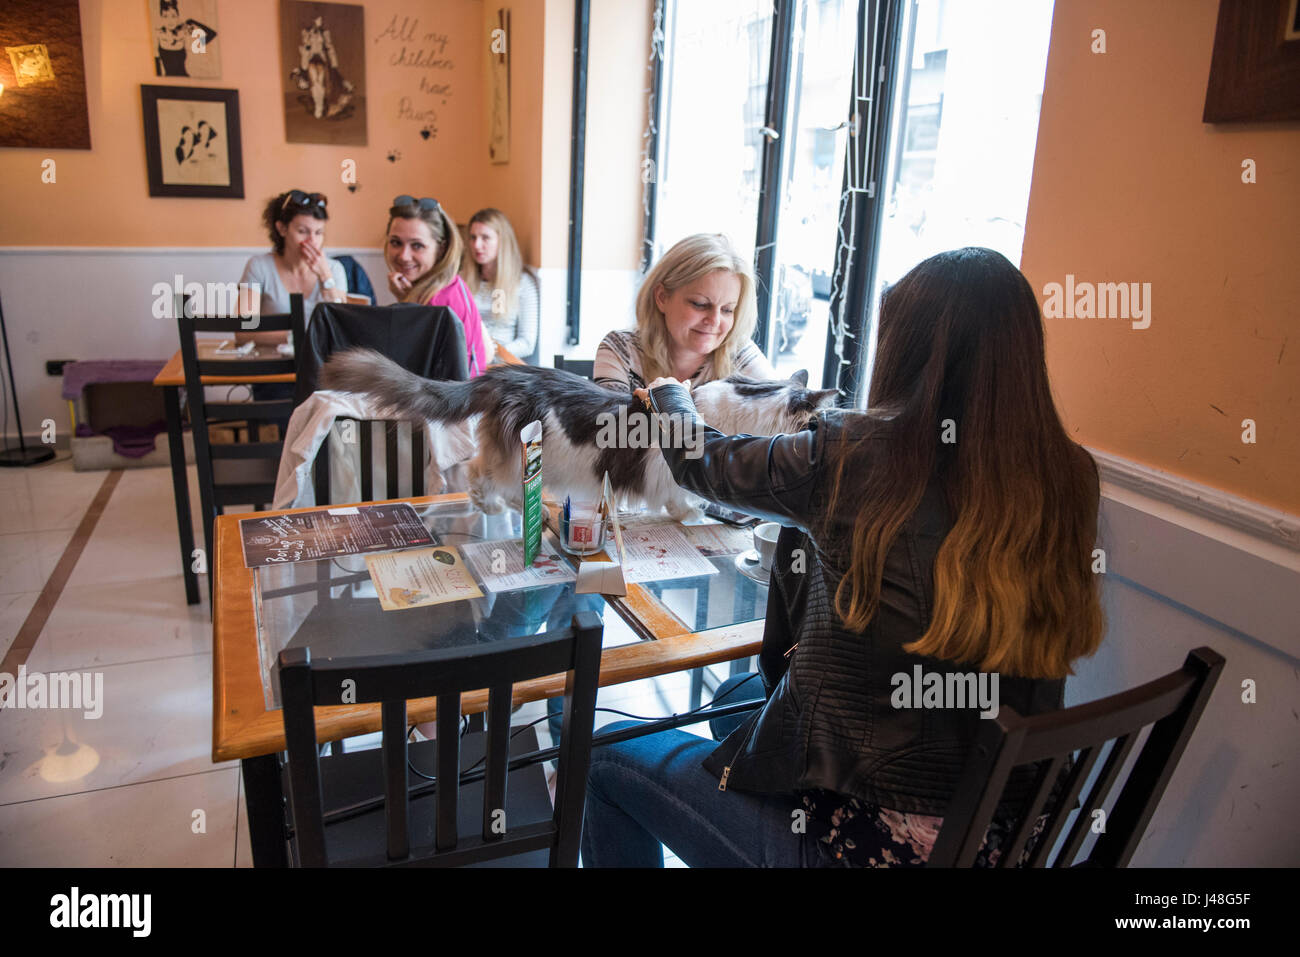 People Are Visiting This Coffee Shop In Budapest Hungary Cat Cafe Stock Photo Alamy